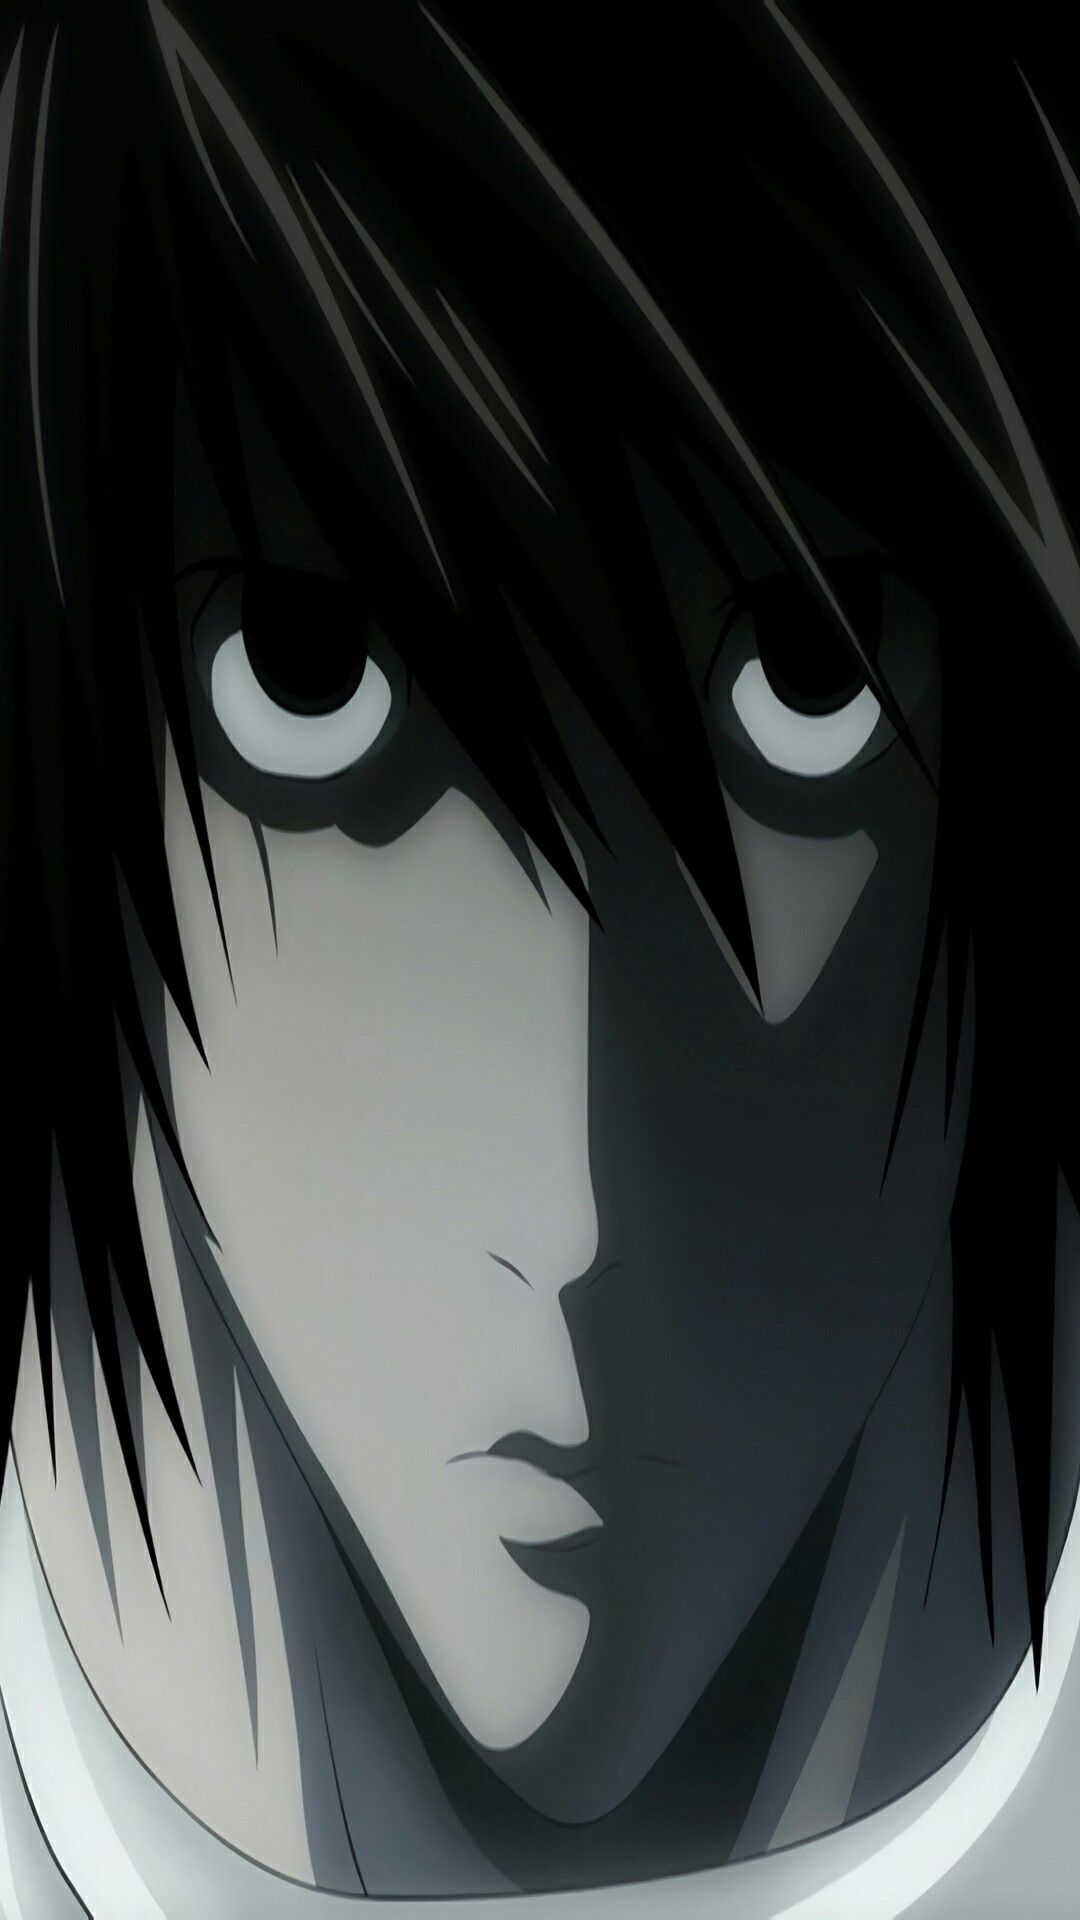 Pin by Kylie on Death Note Death note, Best animes ever